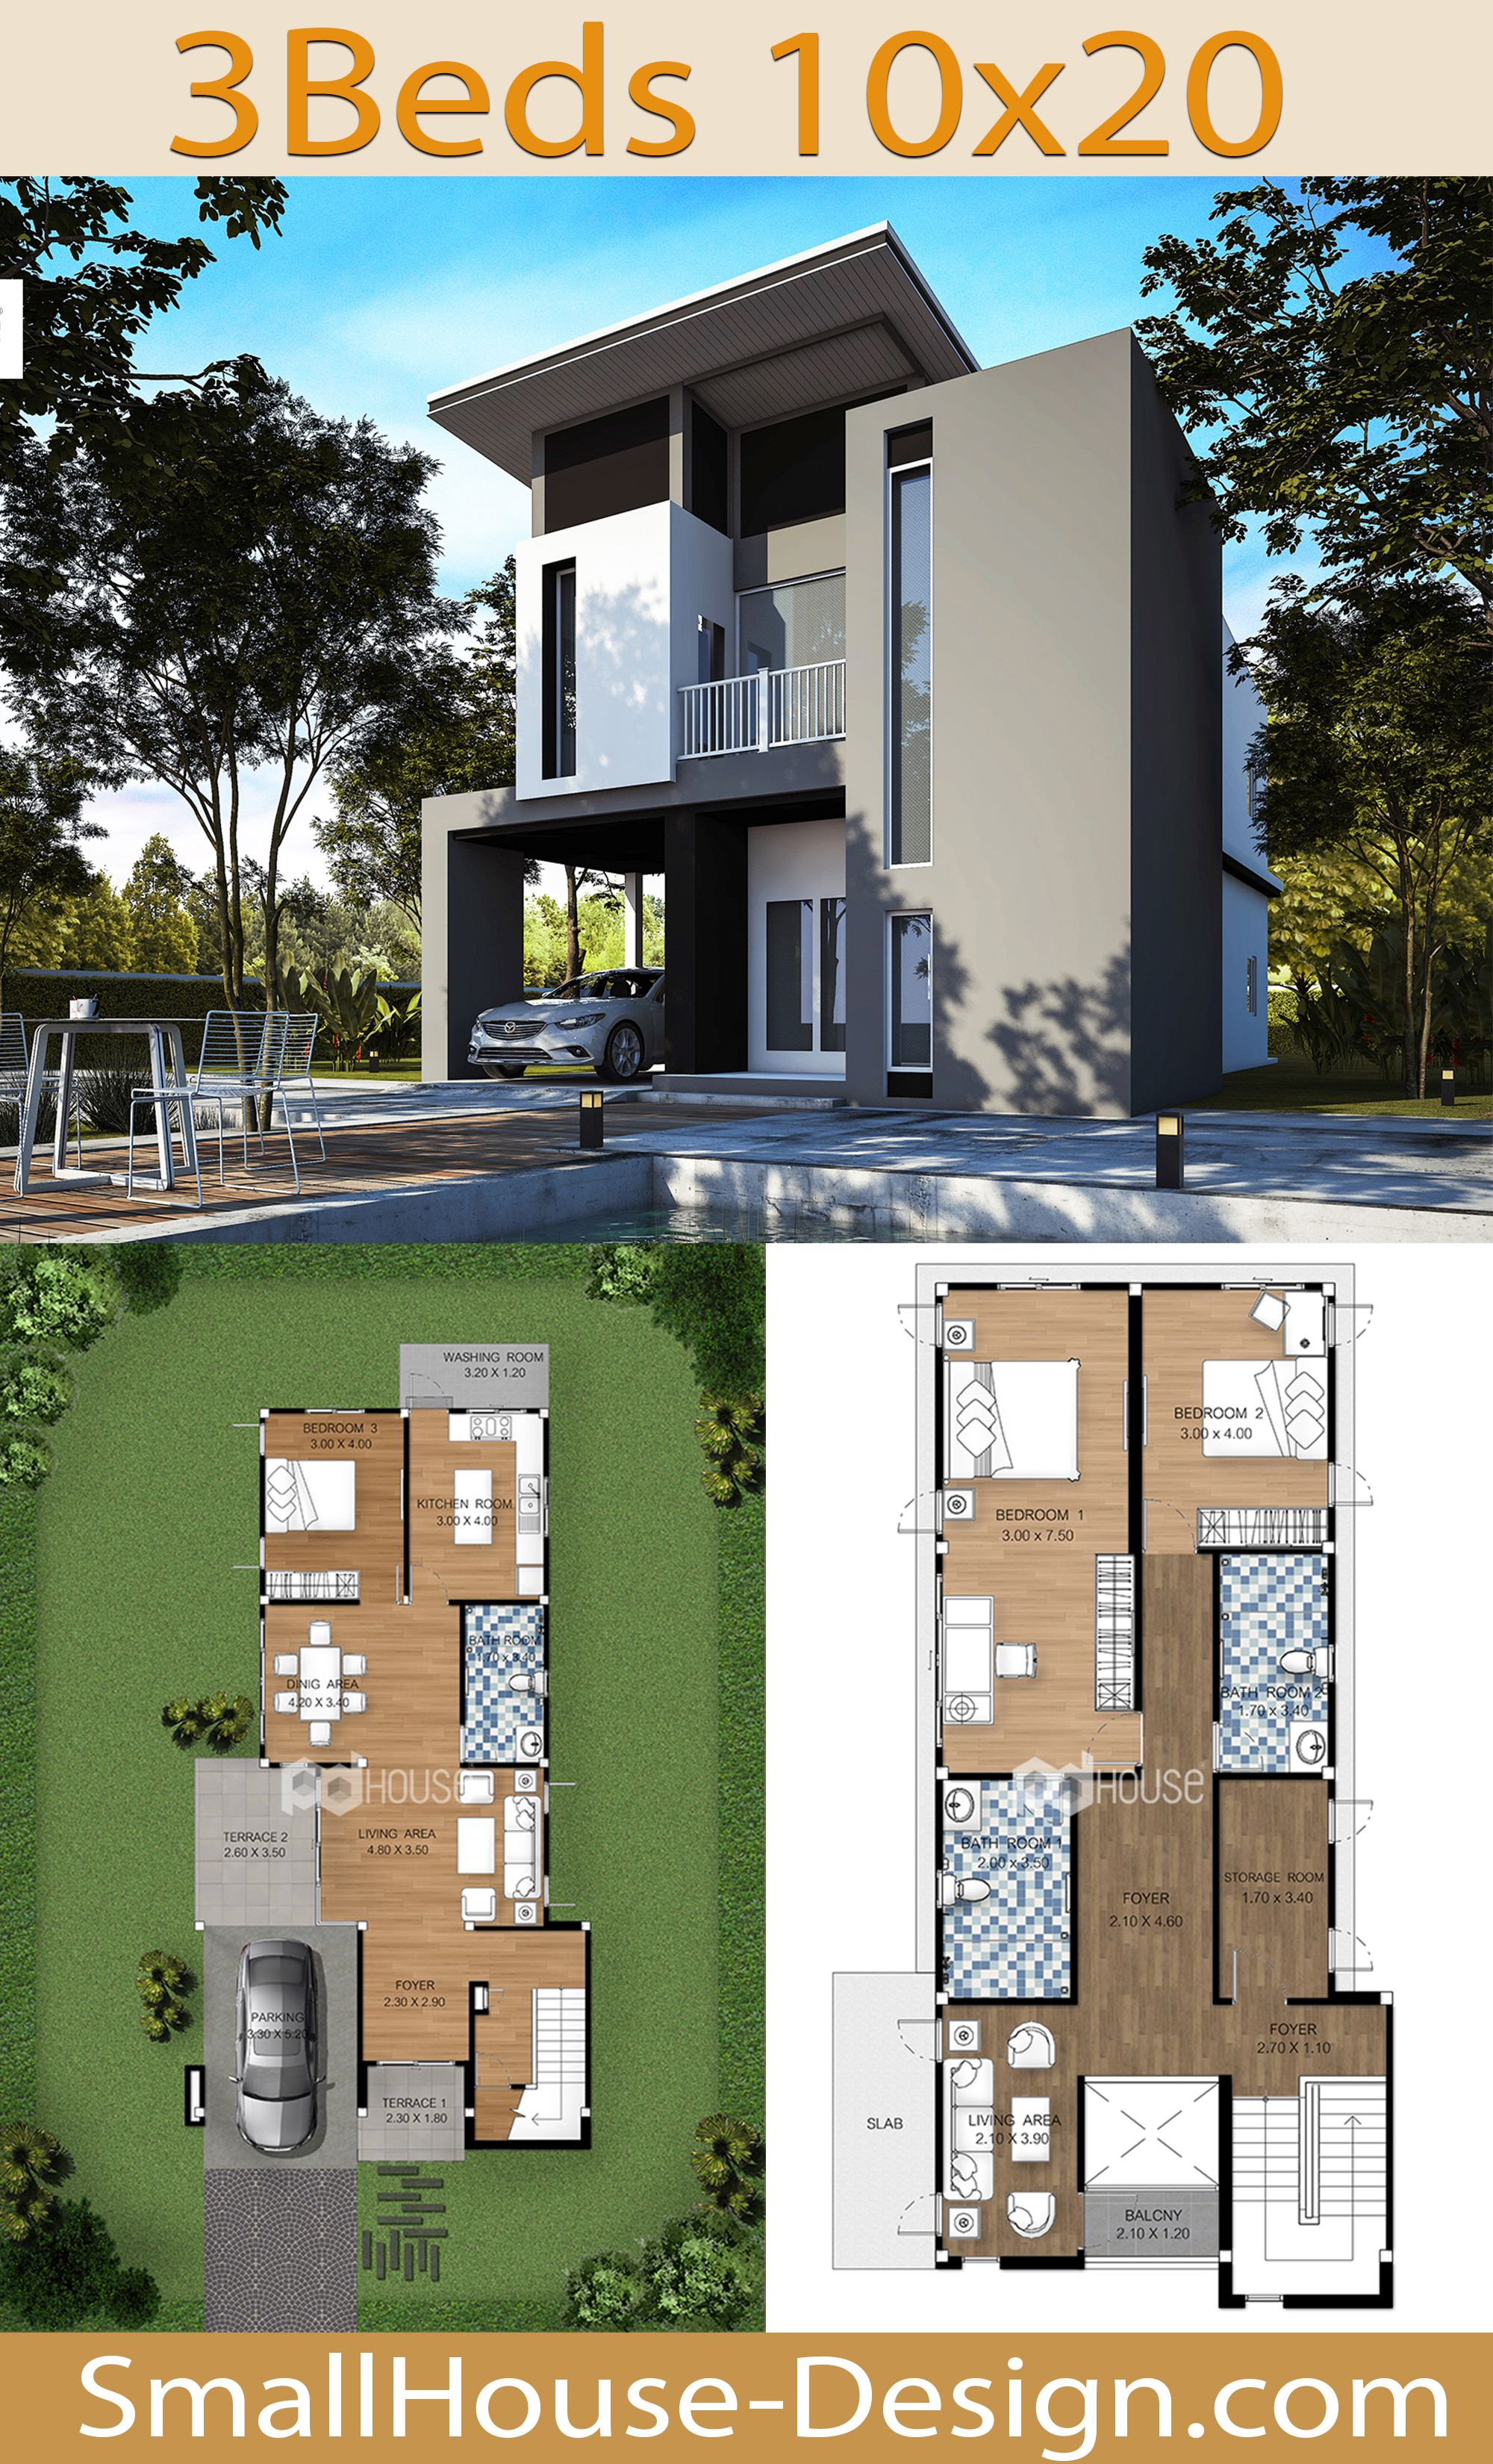 House Plans Idea 10x20 With 3 Bedrooms Small House Design Modern Small House Design House Construction Plan